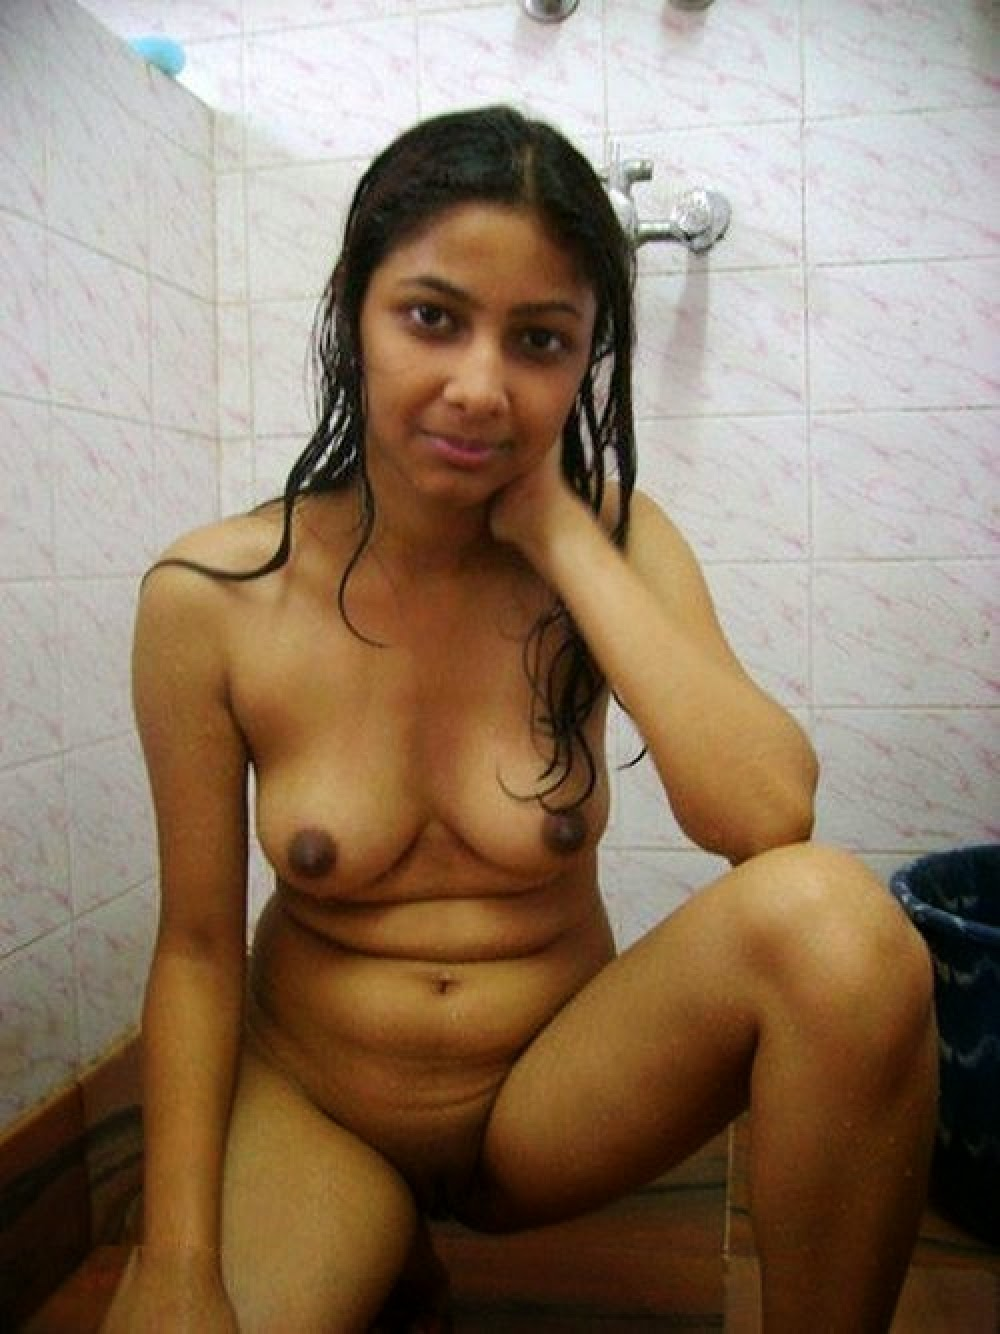 Nude Hot Amateur Indian Girls Sexy Pics-4179